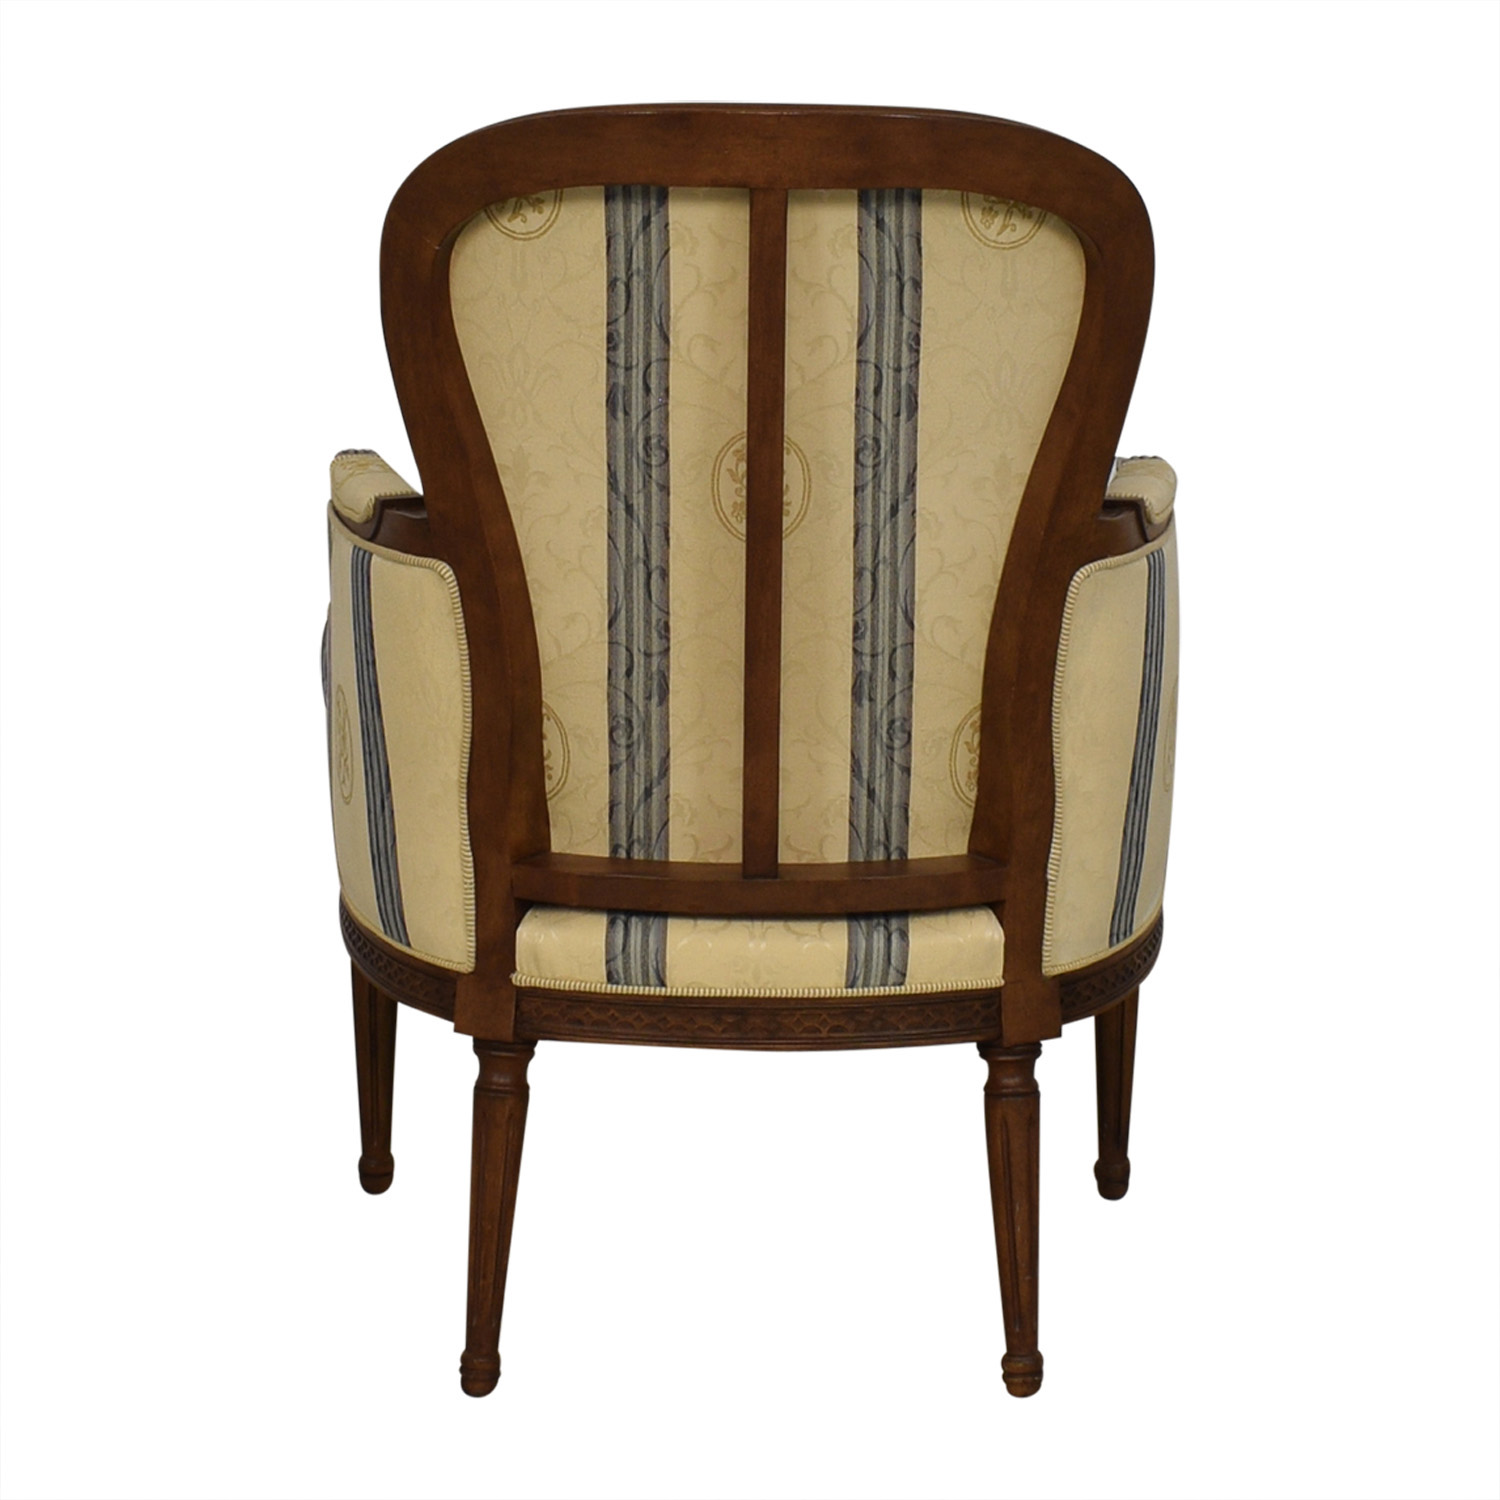 Kravet Kravet Chair for sale